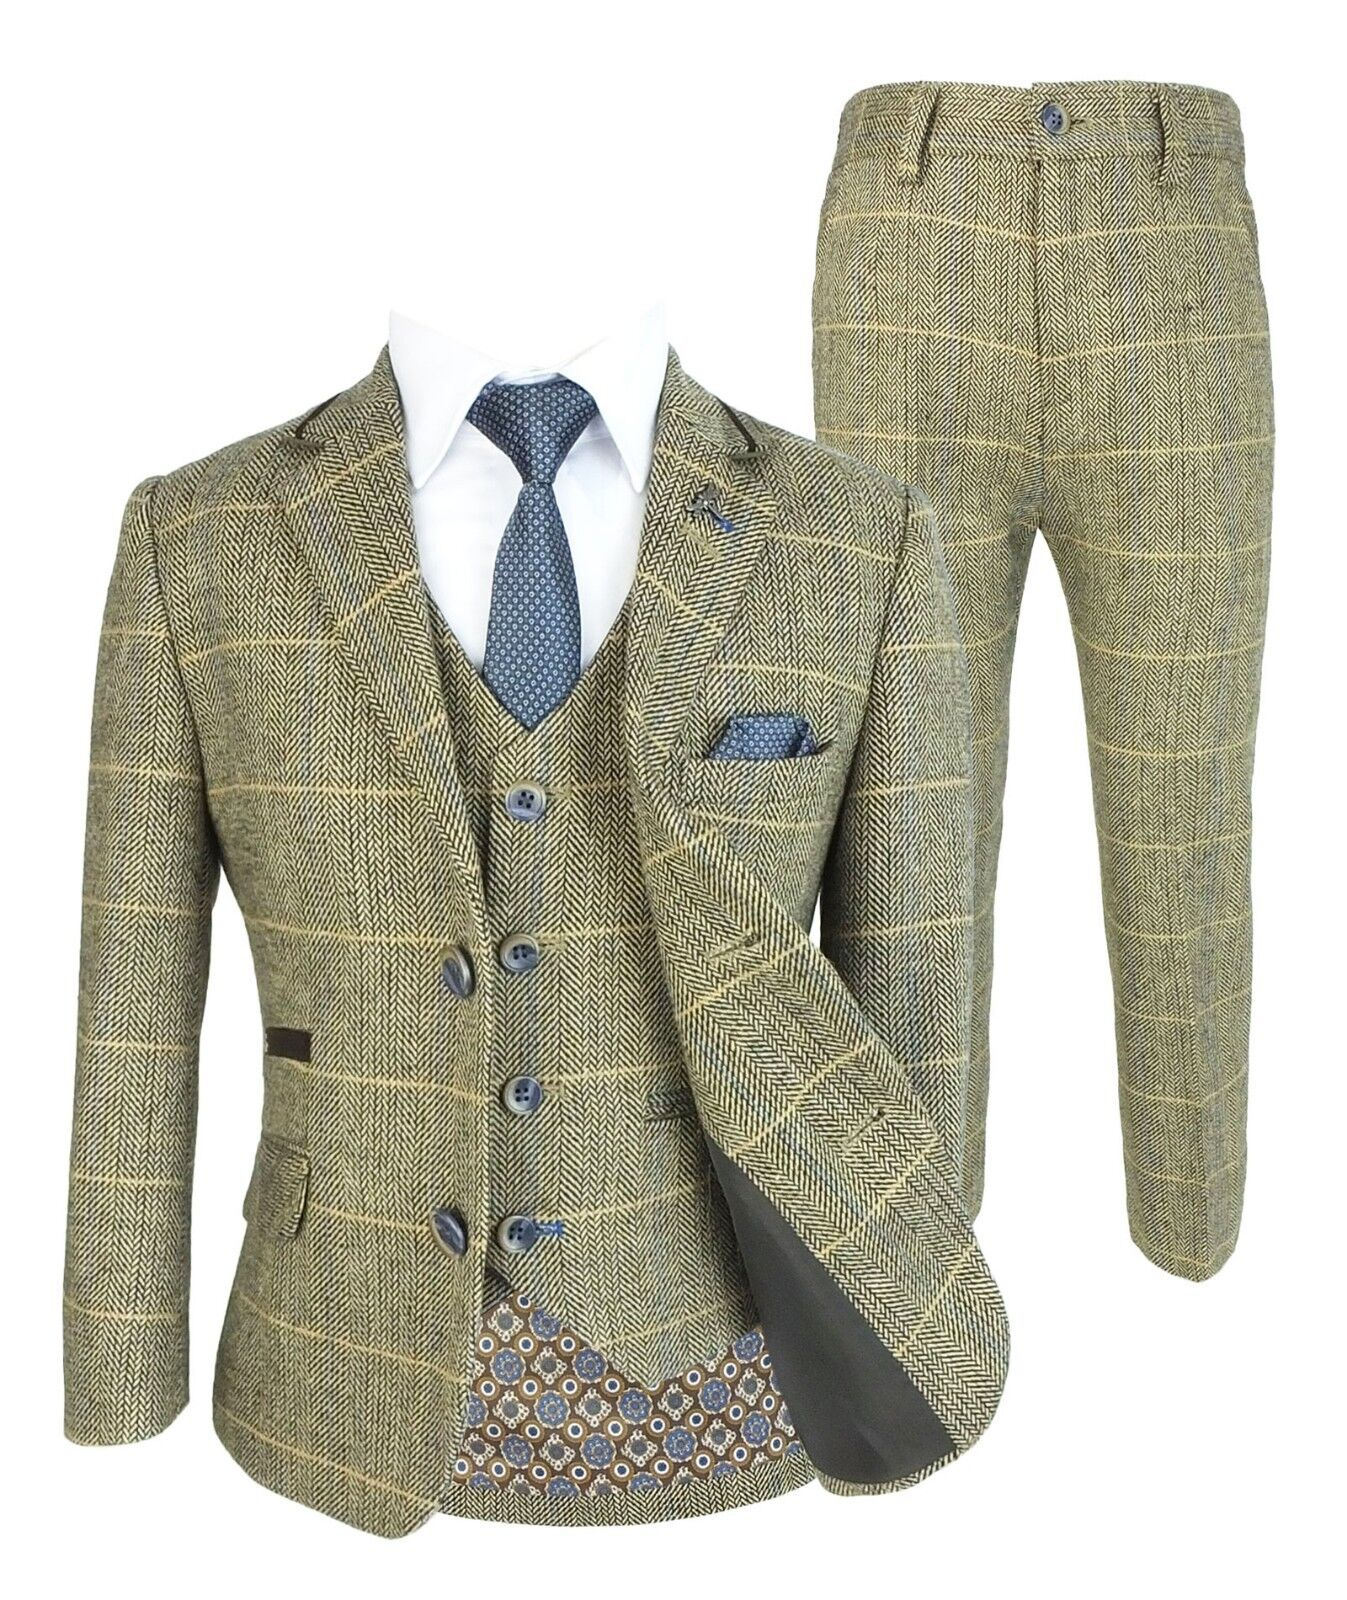 new style & luxury choose clearance great look Details about Boys Tan Brown Check Tweed Suit Wedding Party Prom Vintage  Peaky Blinders Suits